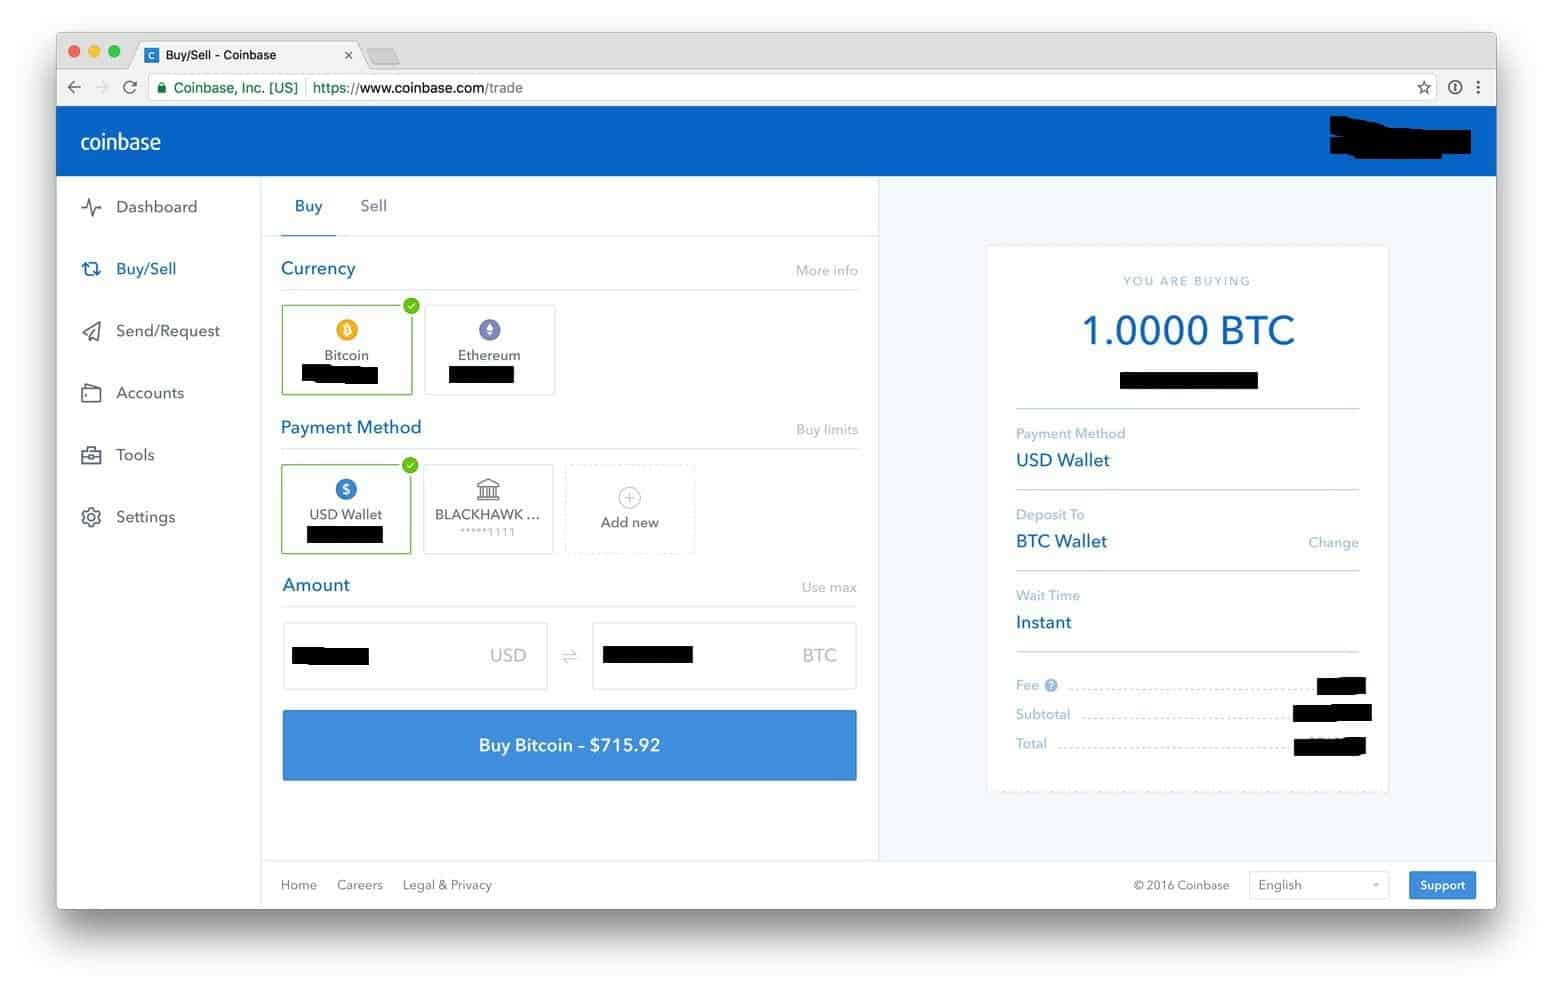 Coinbase Buy-Sell screen